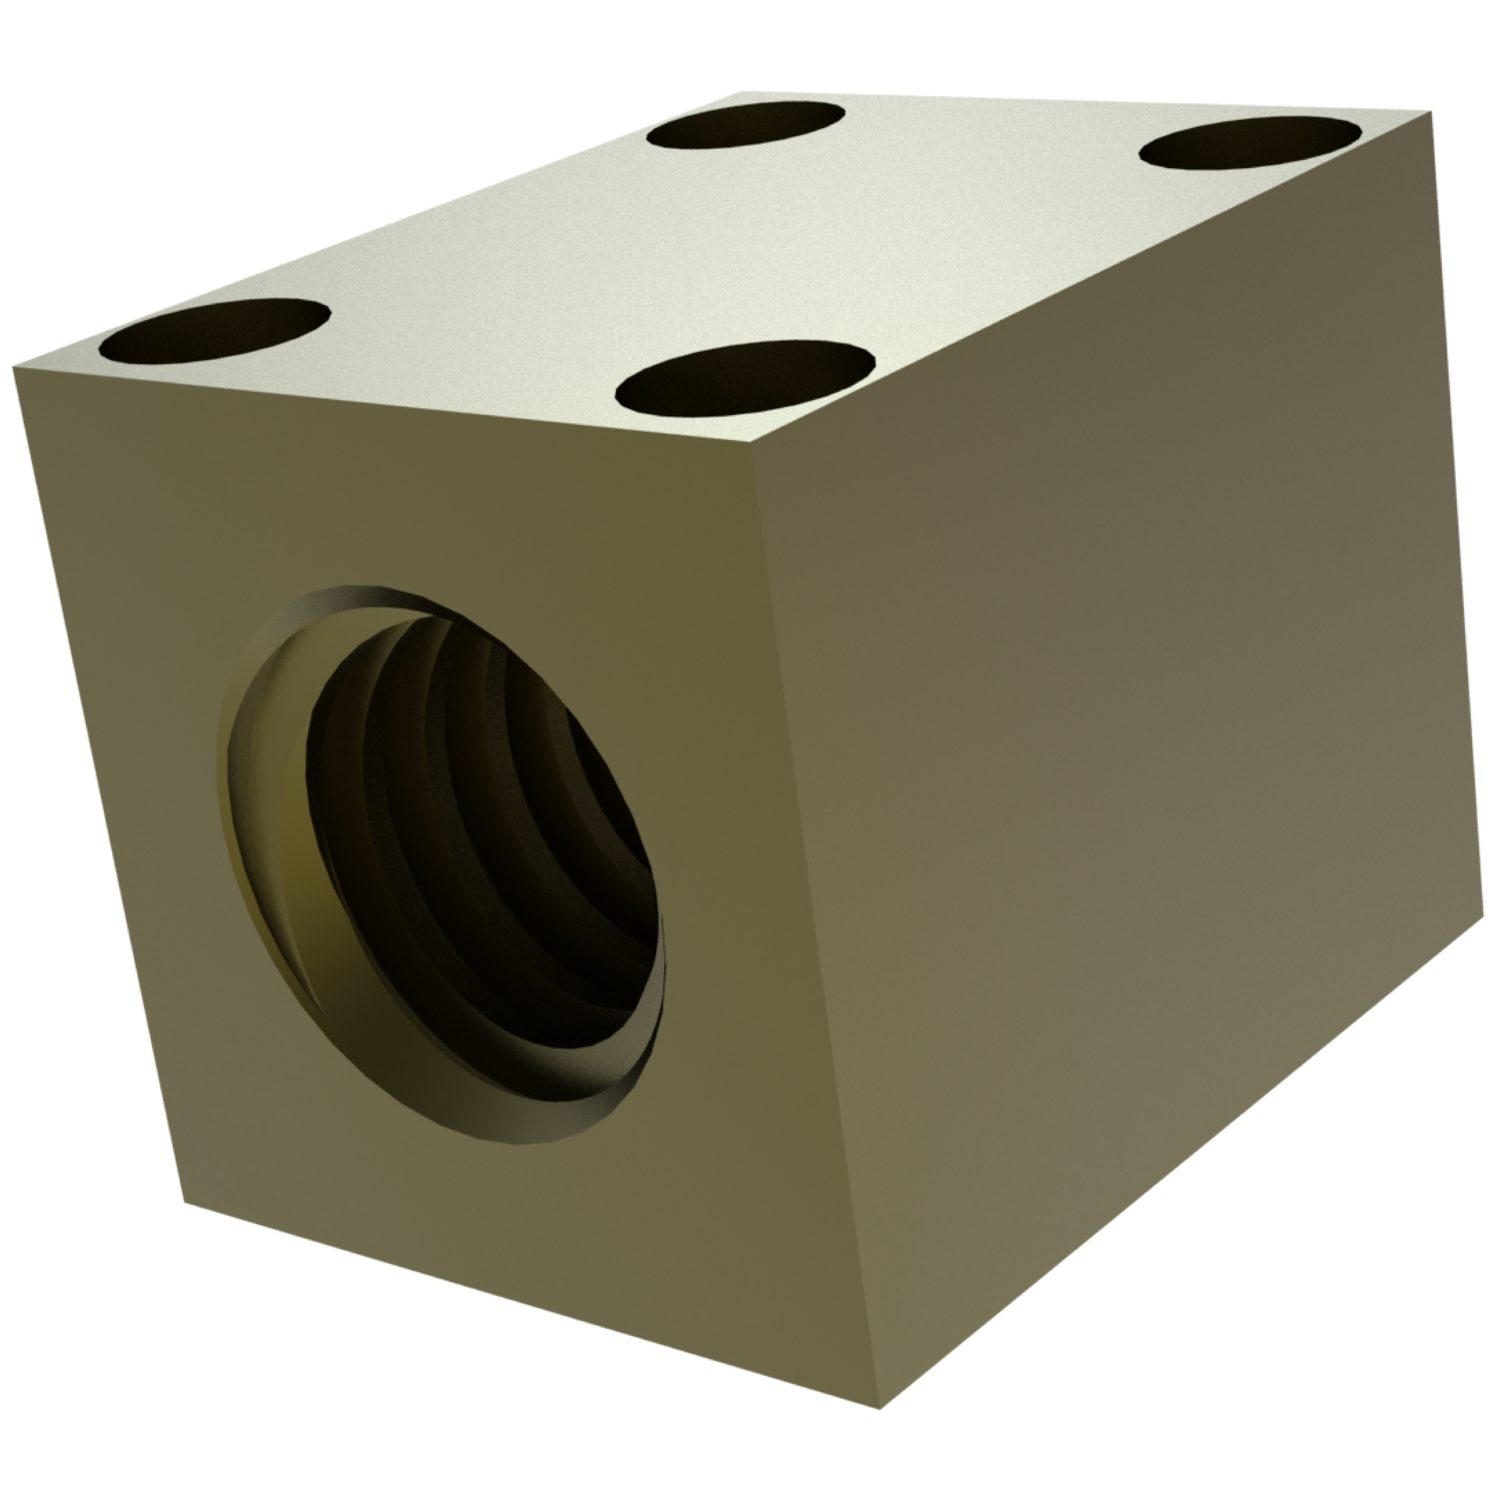 Square Bronze Nut with Through Holes Square bronze lead screws nuts - for trapezoidal threads.